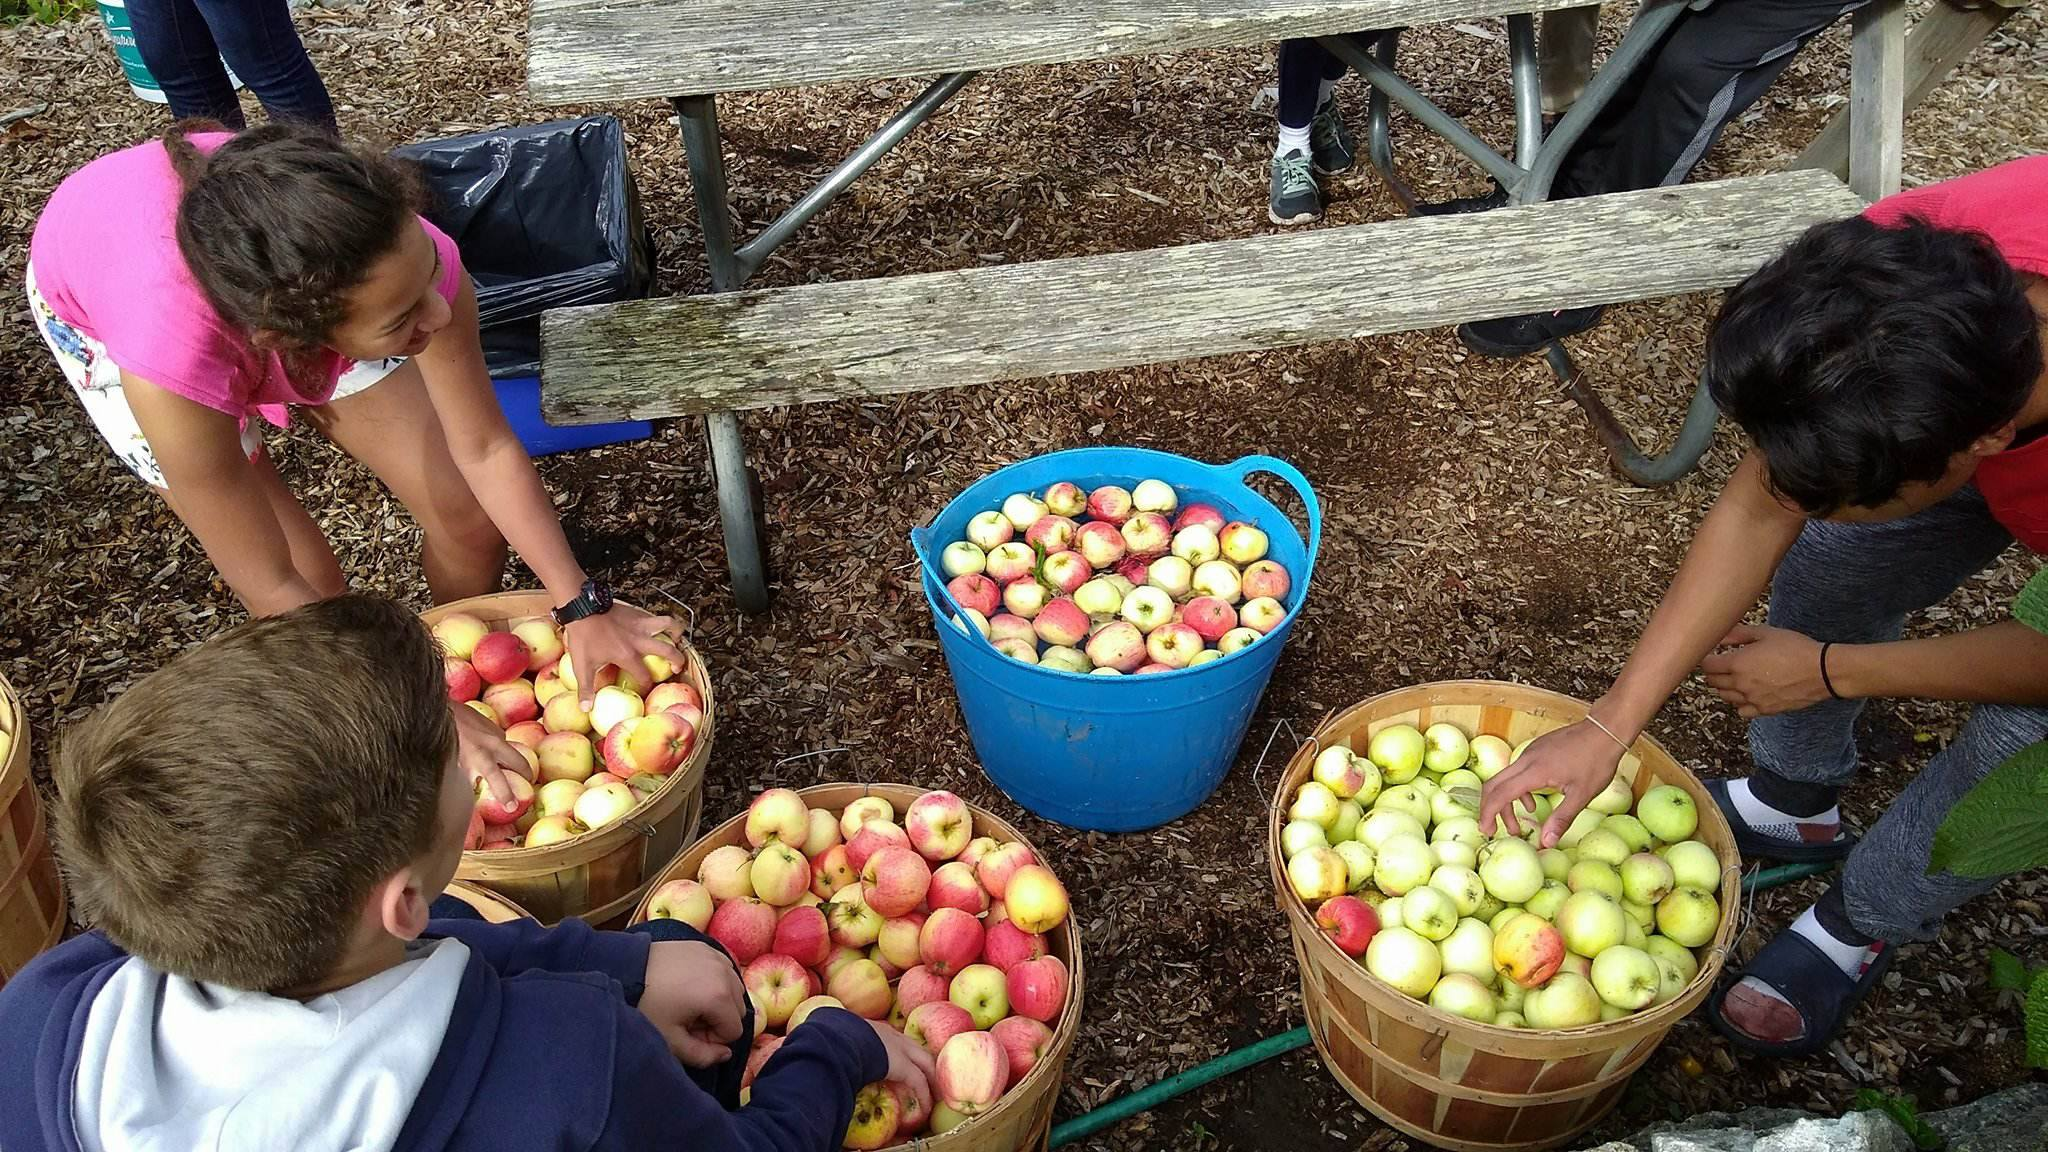 Local apple harvest